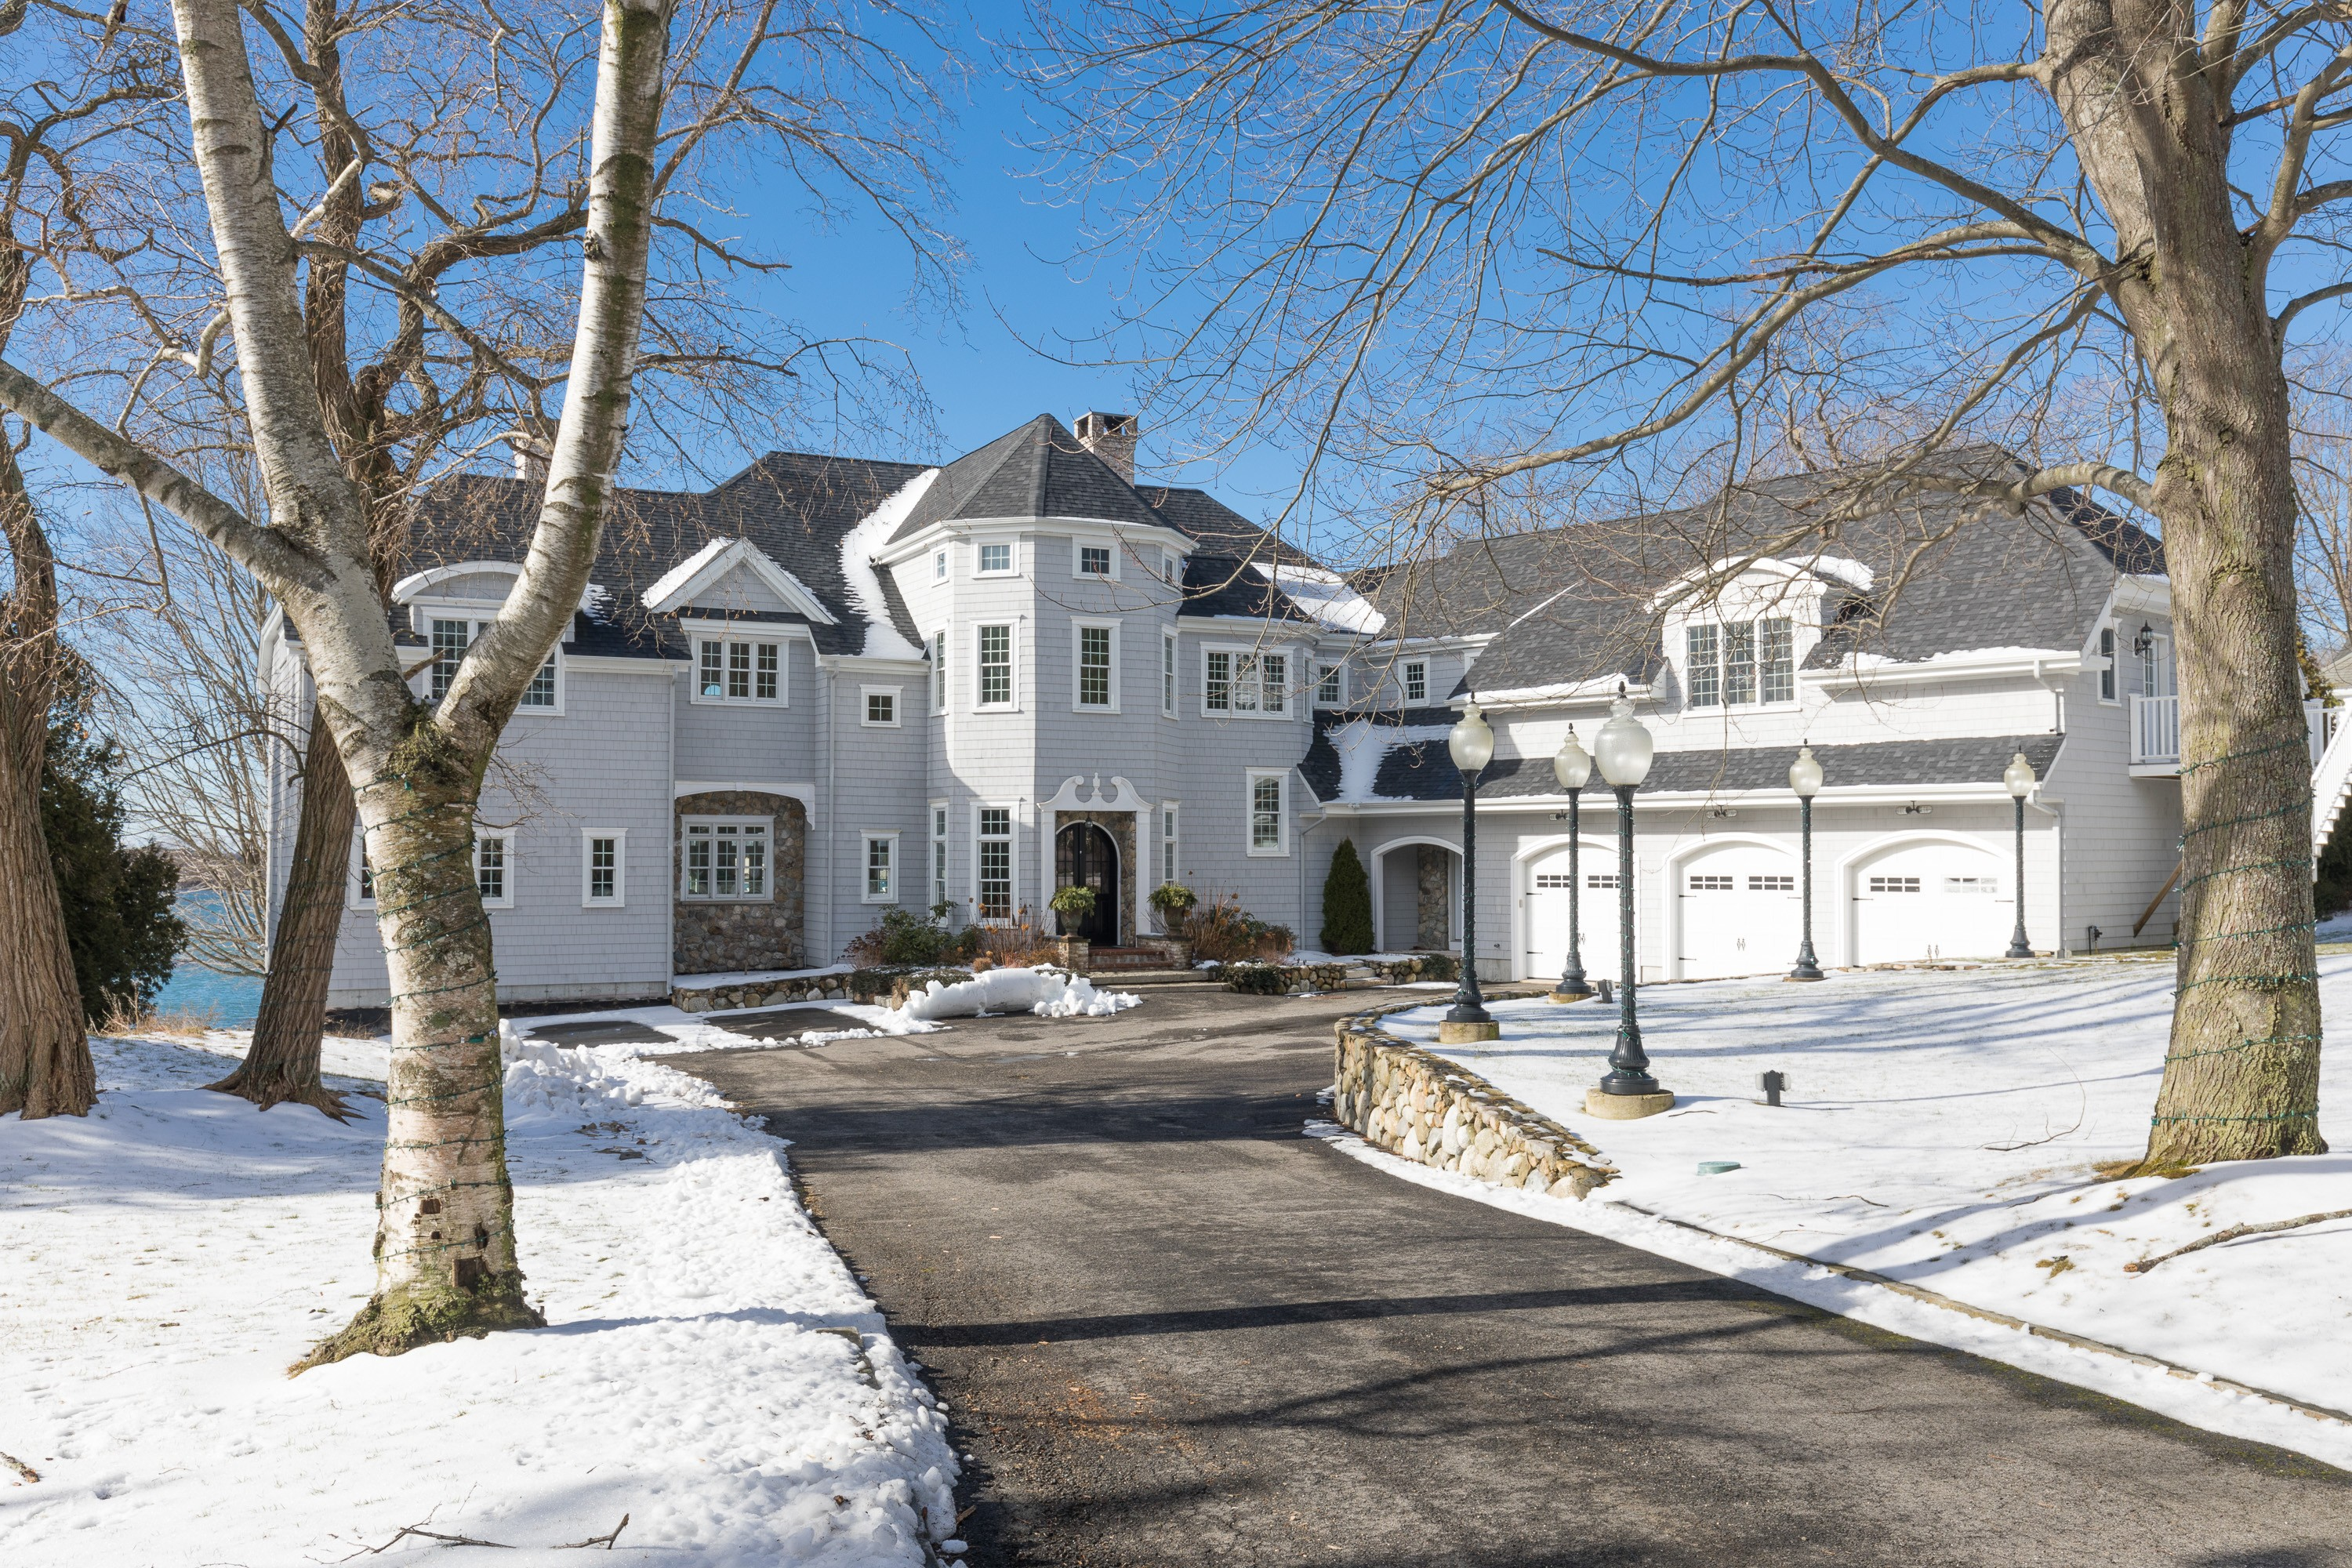 Single Family Home for Sale at Grand Oceanfront Home in Kittery Point 4 Lawrence Lane Kittery, Maine 03905 United States